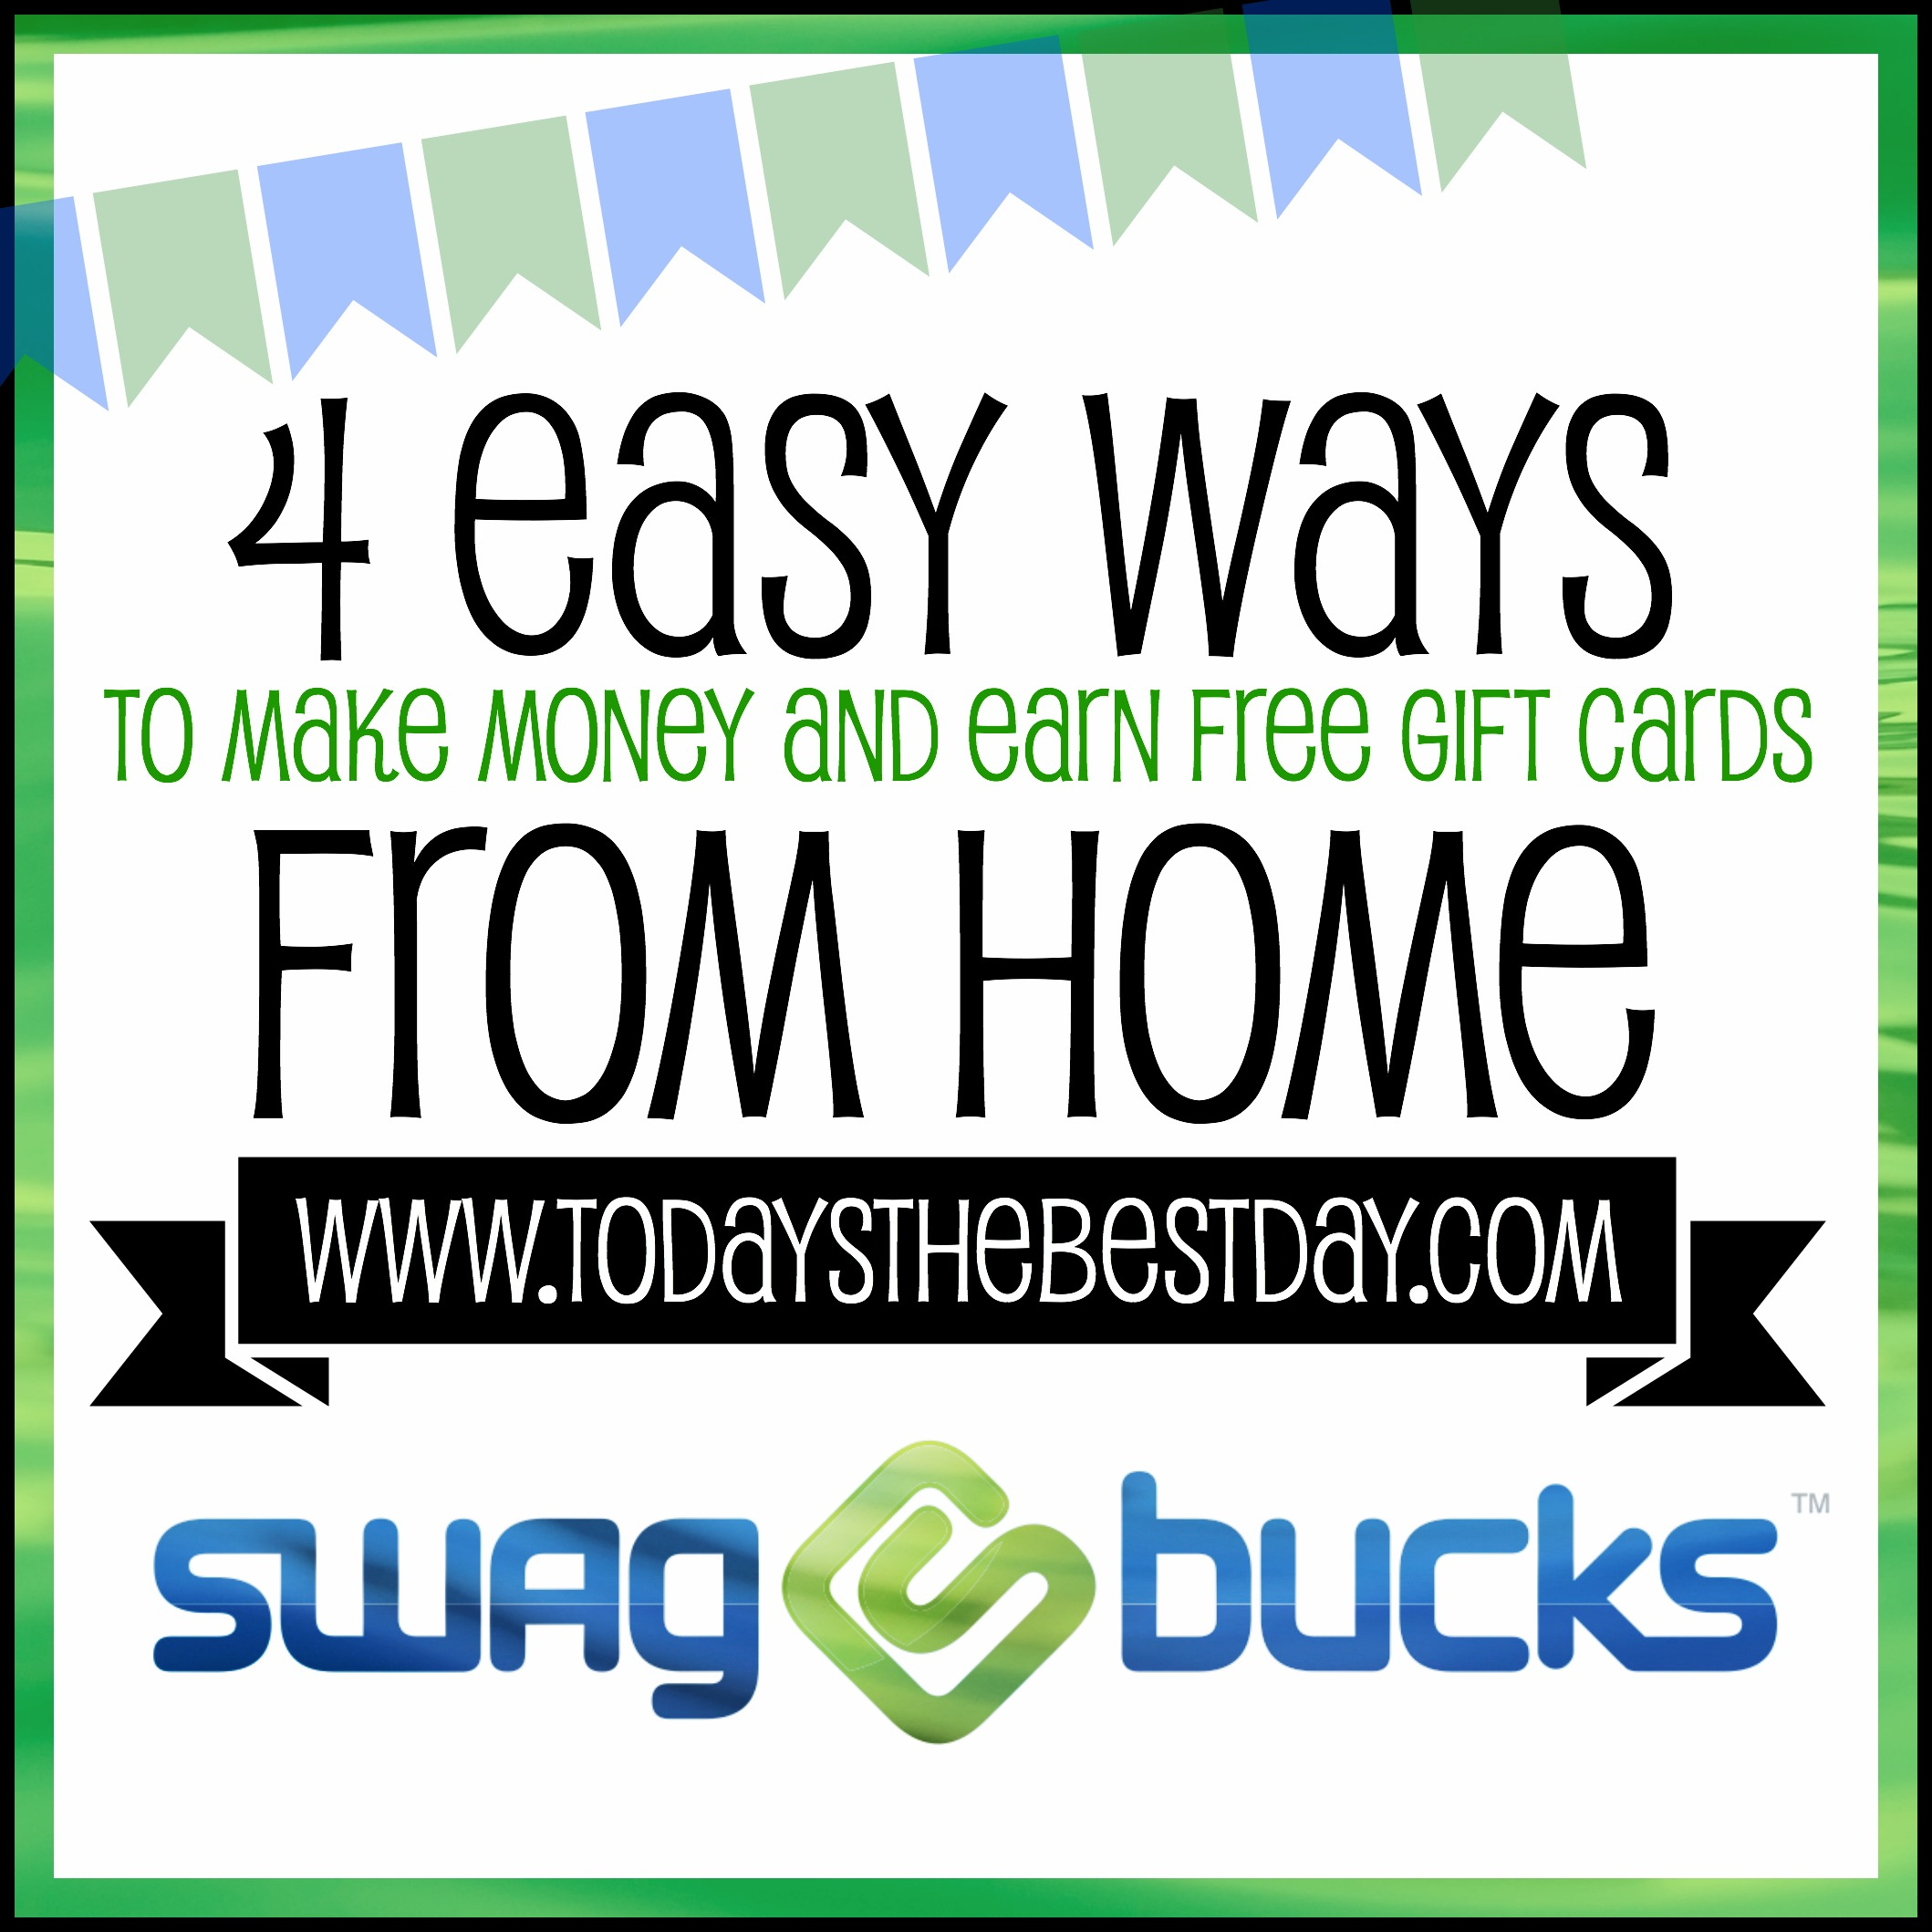 swagbucks 4 easy ways to earn free gift cards today s the best day